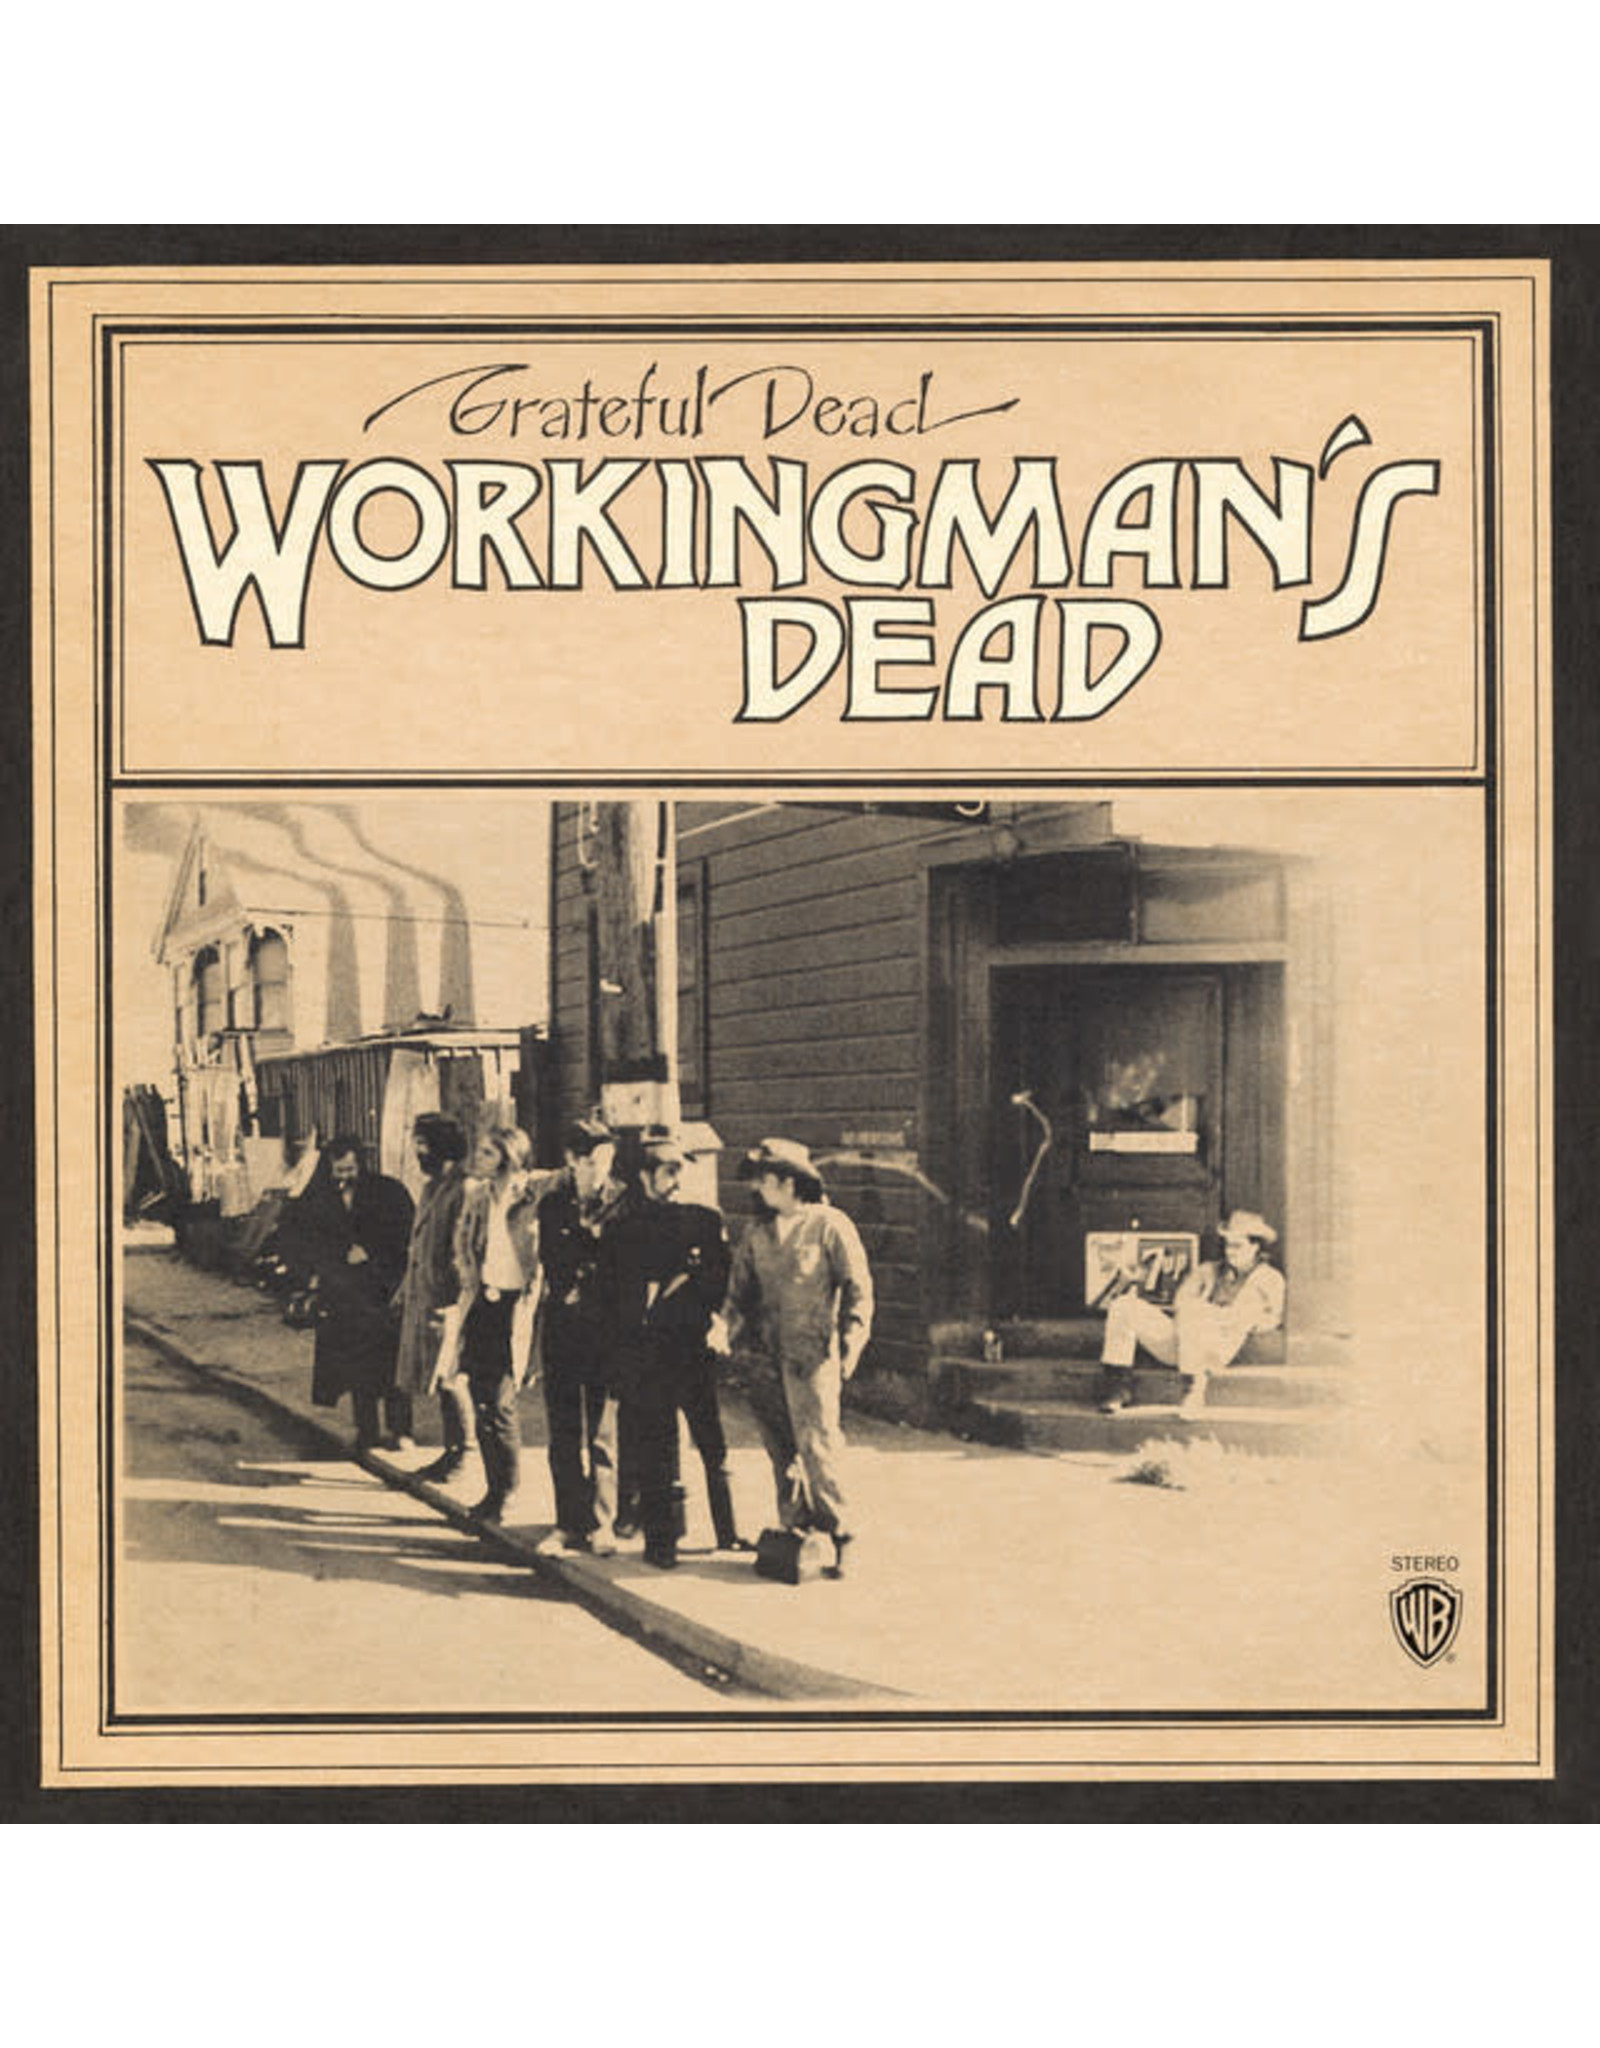 Vinyl The Grateful Dead - Workingman's Dead (50th Anniversary) - Picture Disc